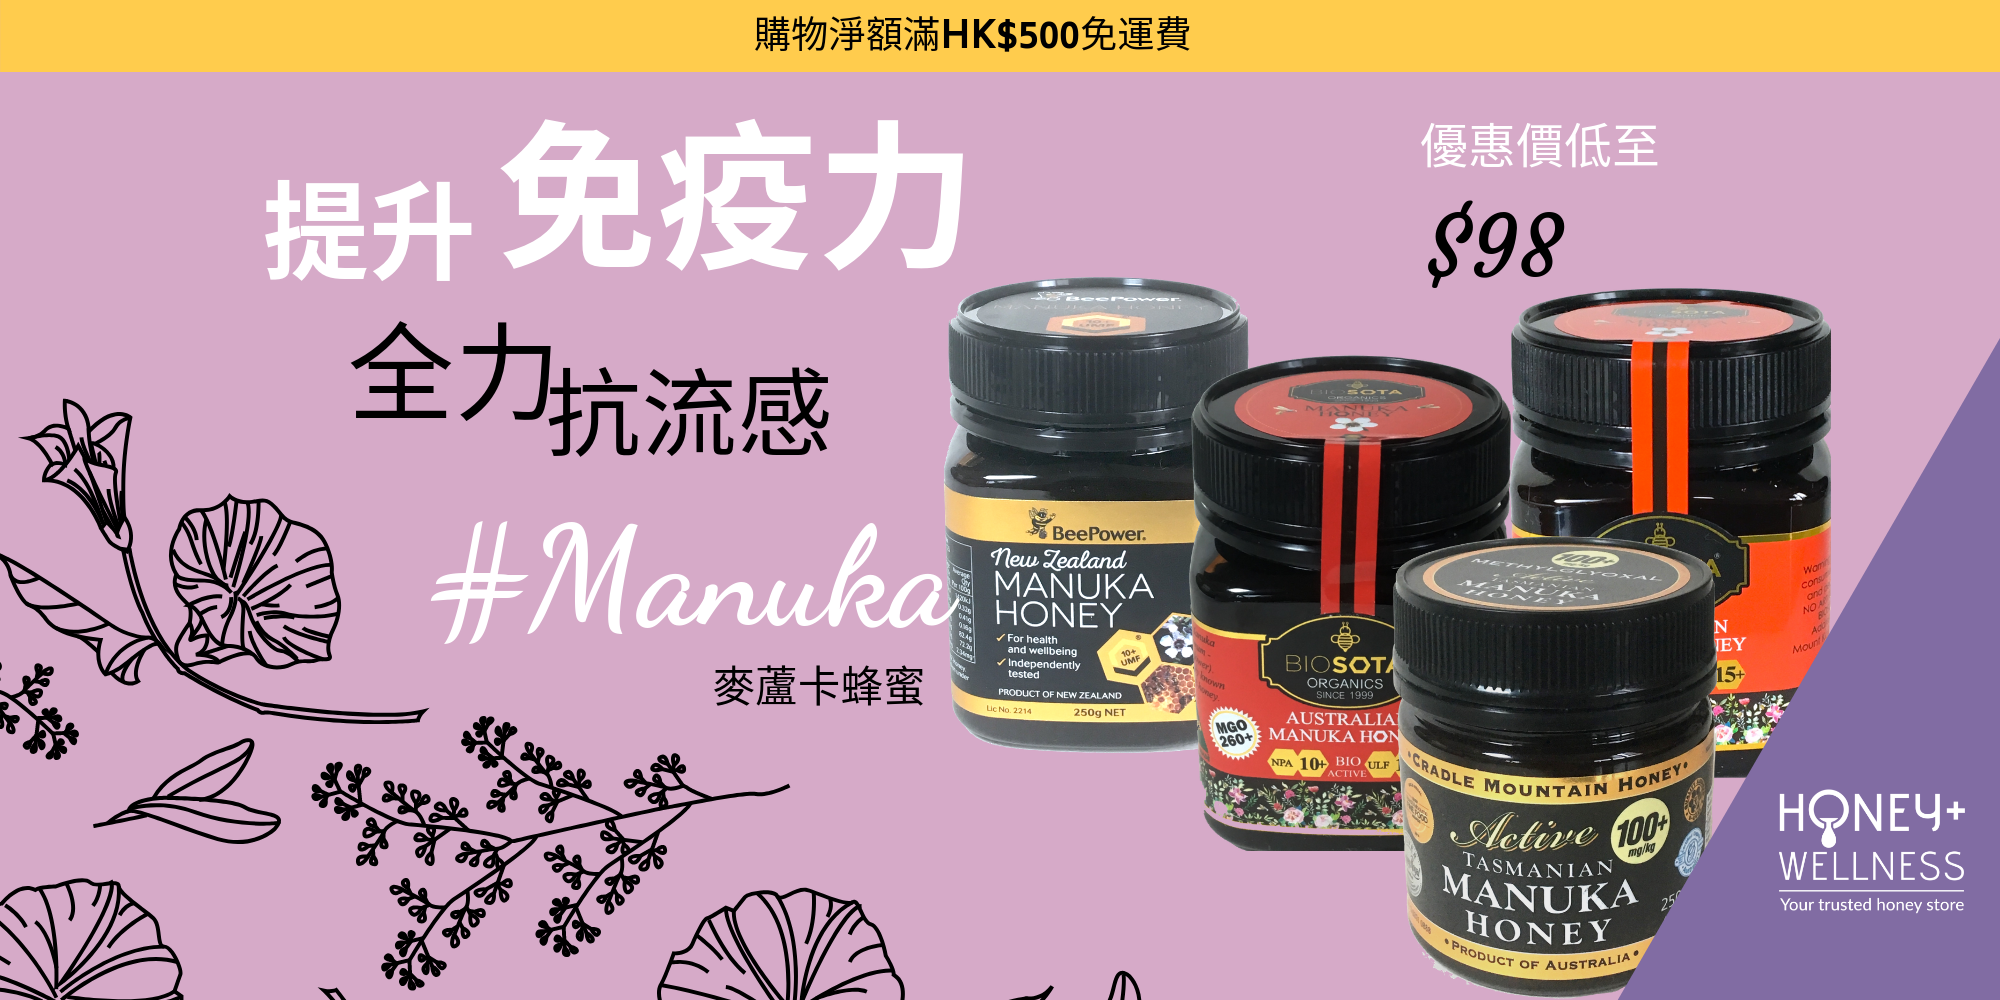 Manuka honey is best for immunity boost and fighting the flue. 麥蘆卡蜂蜜有效提升免疫力和抵抗流感